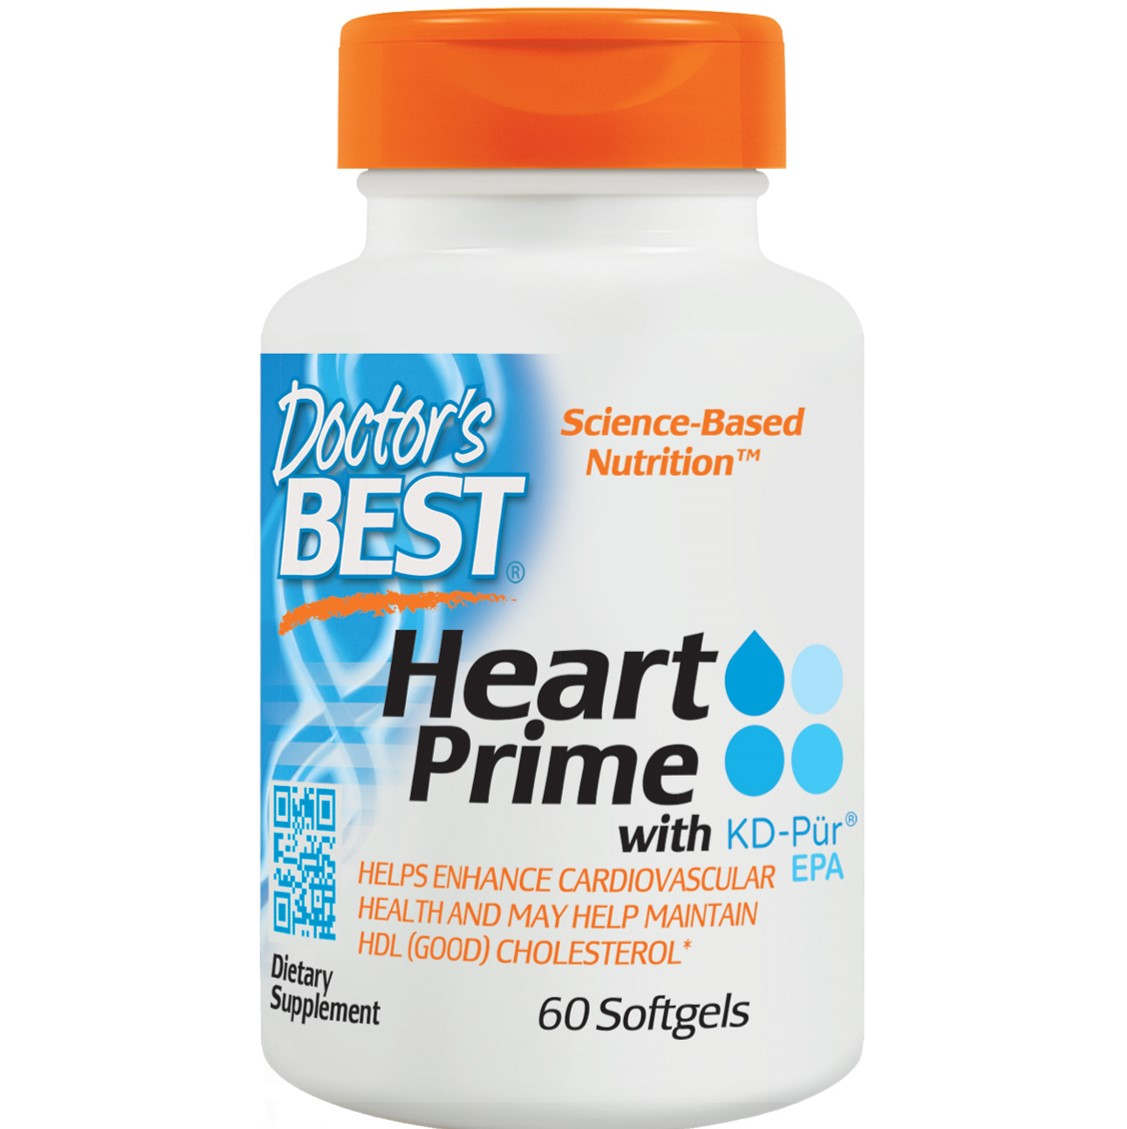 Doctor's Best Heart Prime, 60 sgls